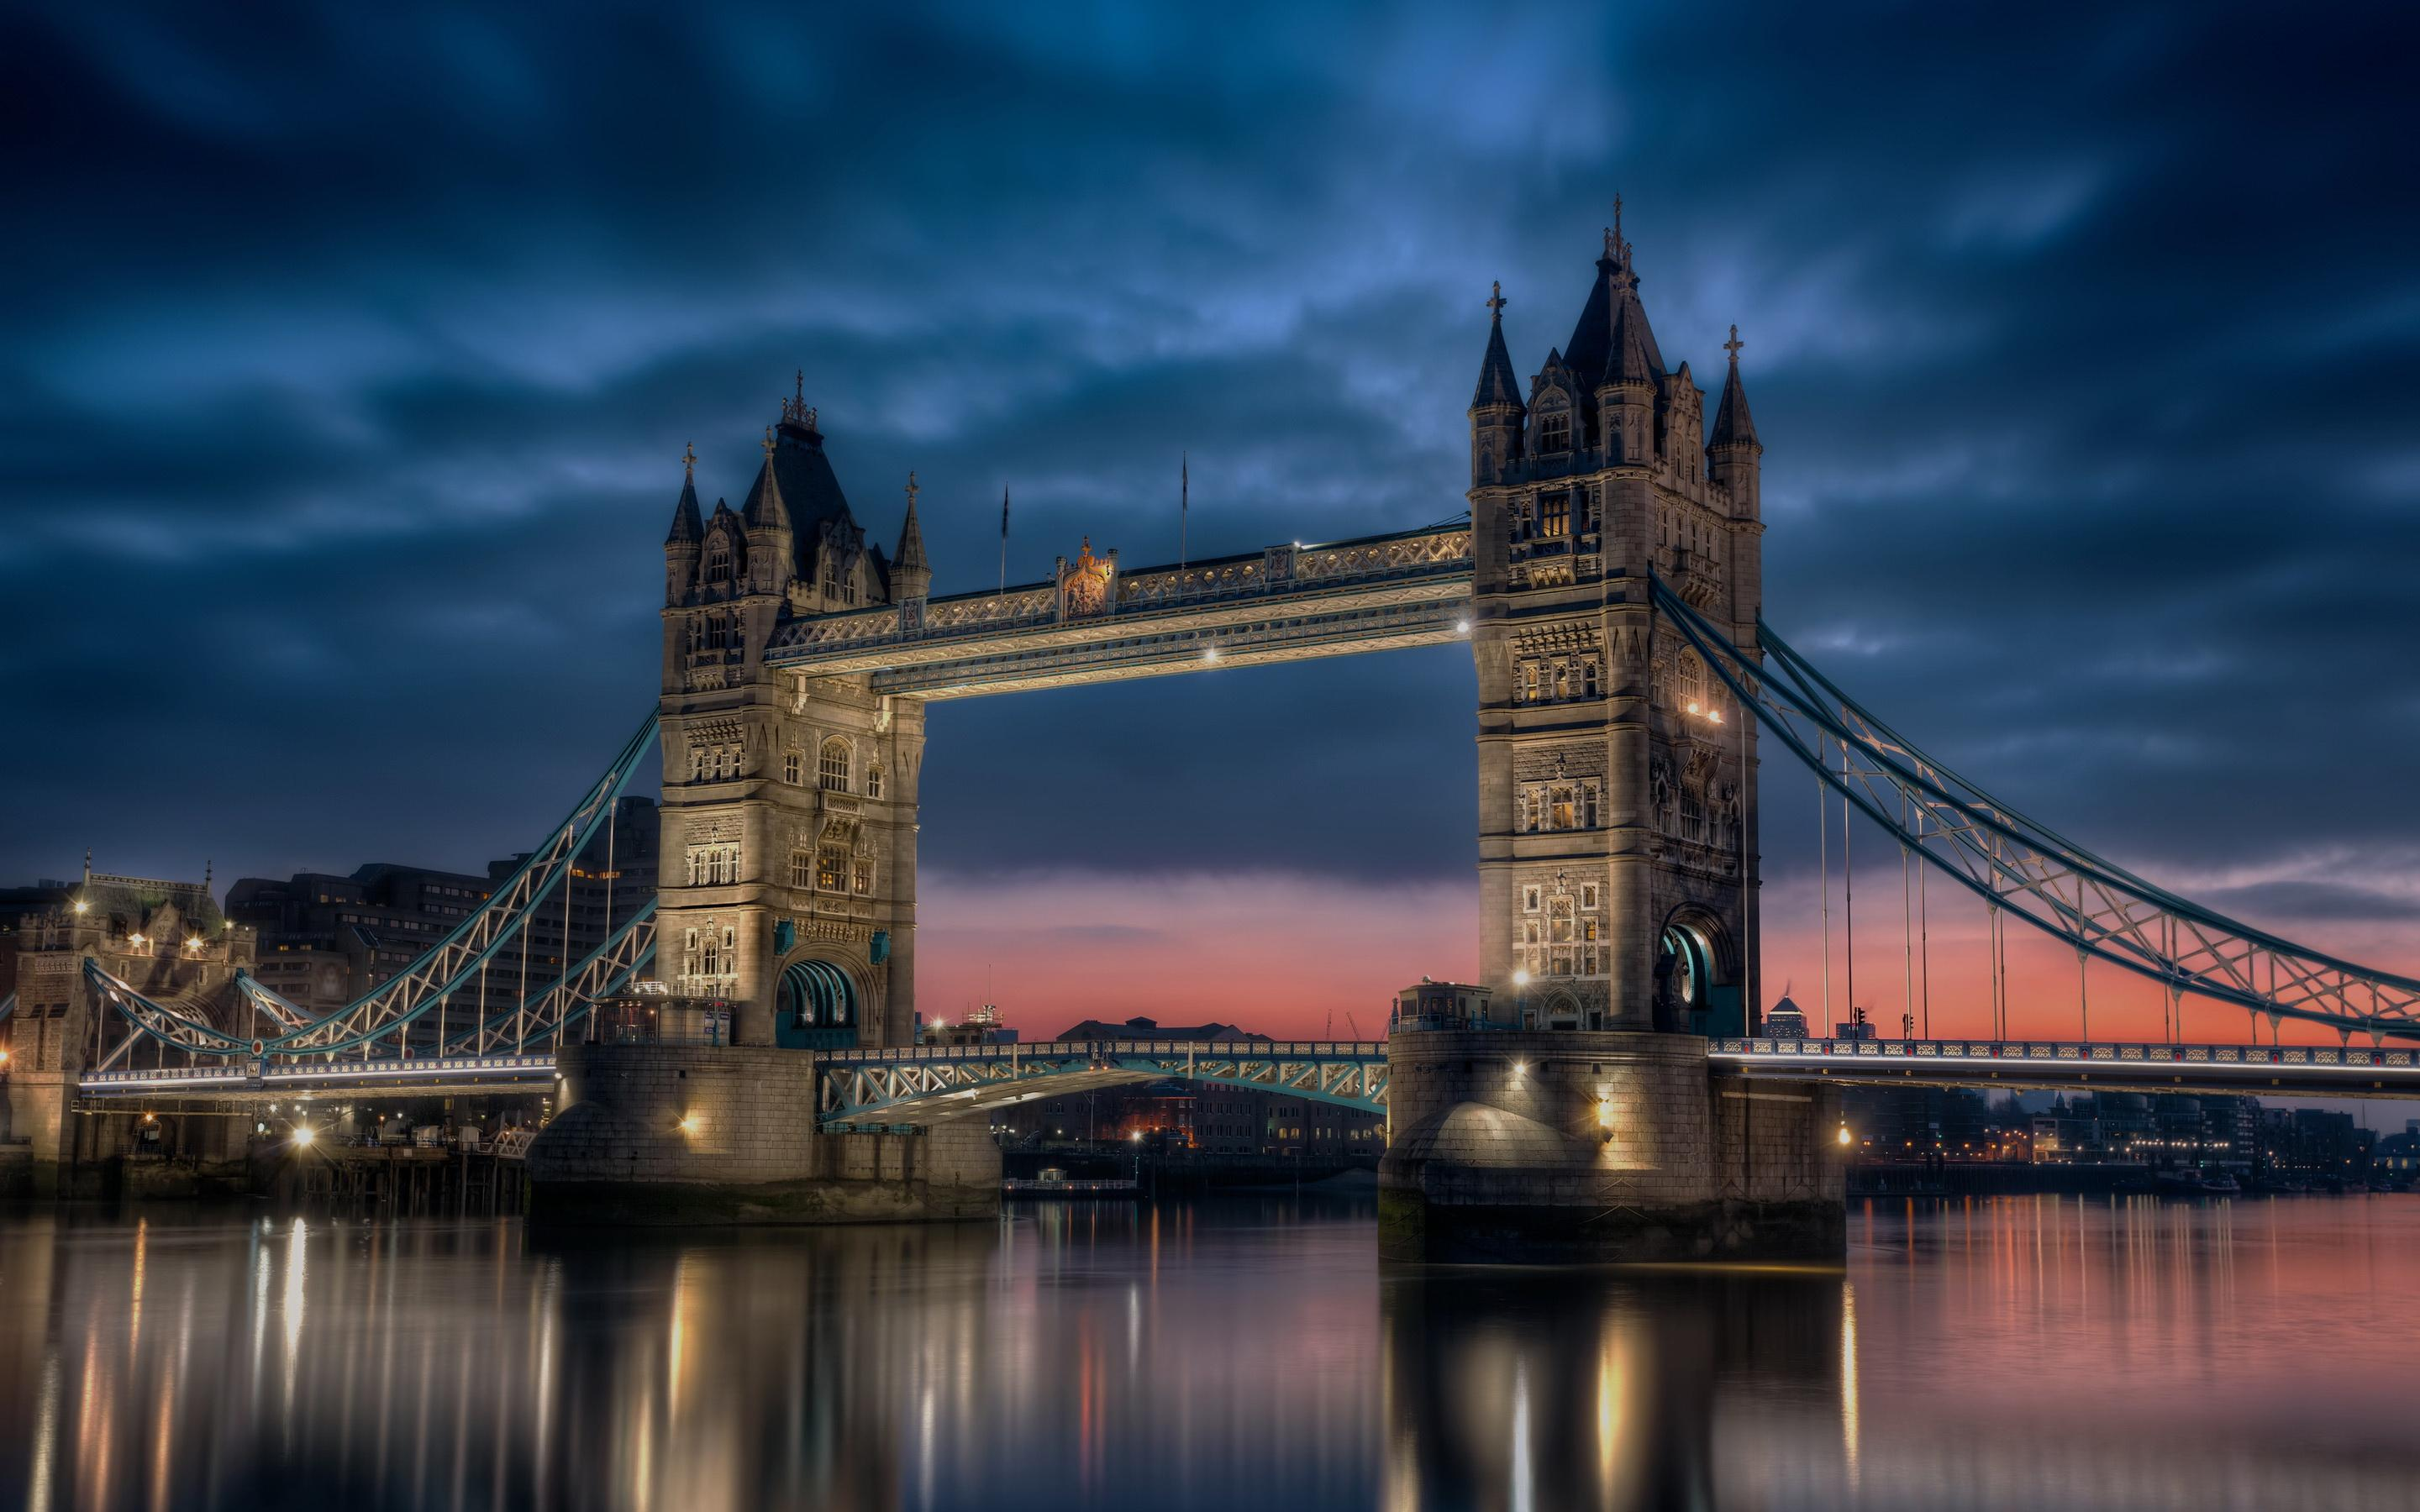 Tower Bridge Wallpapers and Background Images - stmed.net